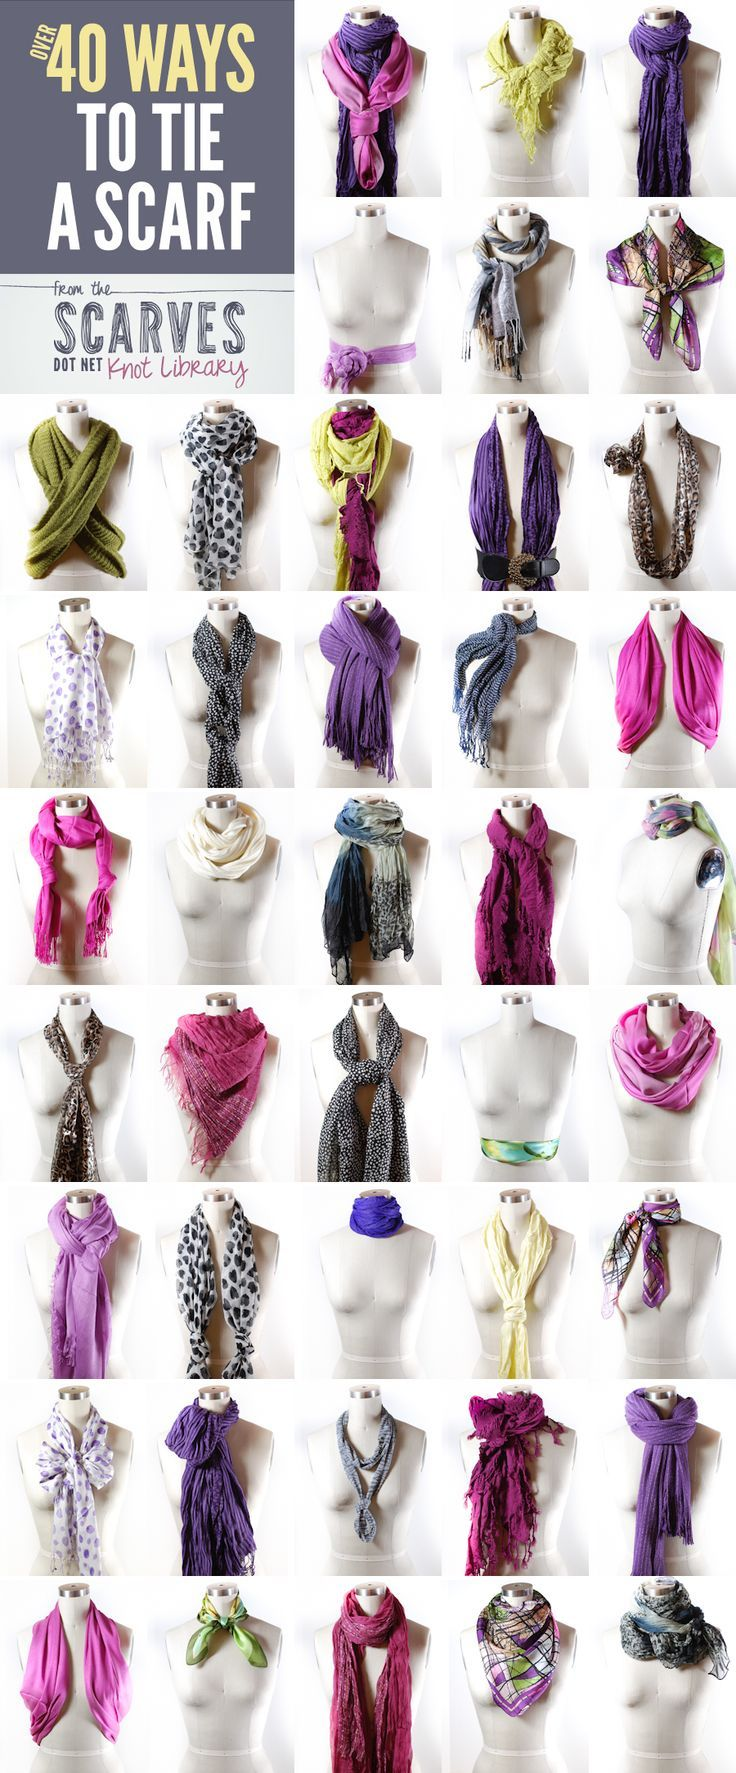 How beautiful and original to tie a scarf